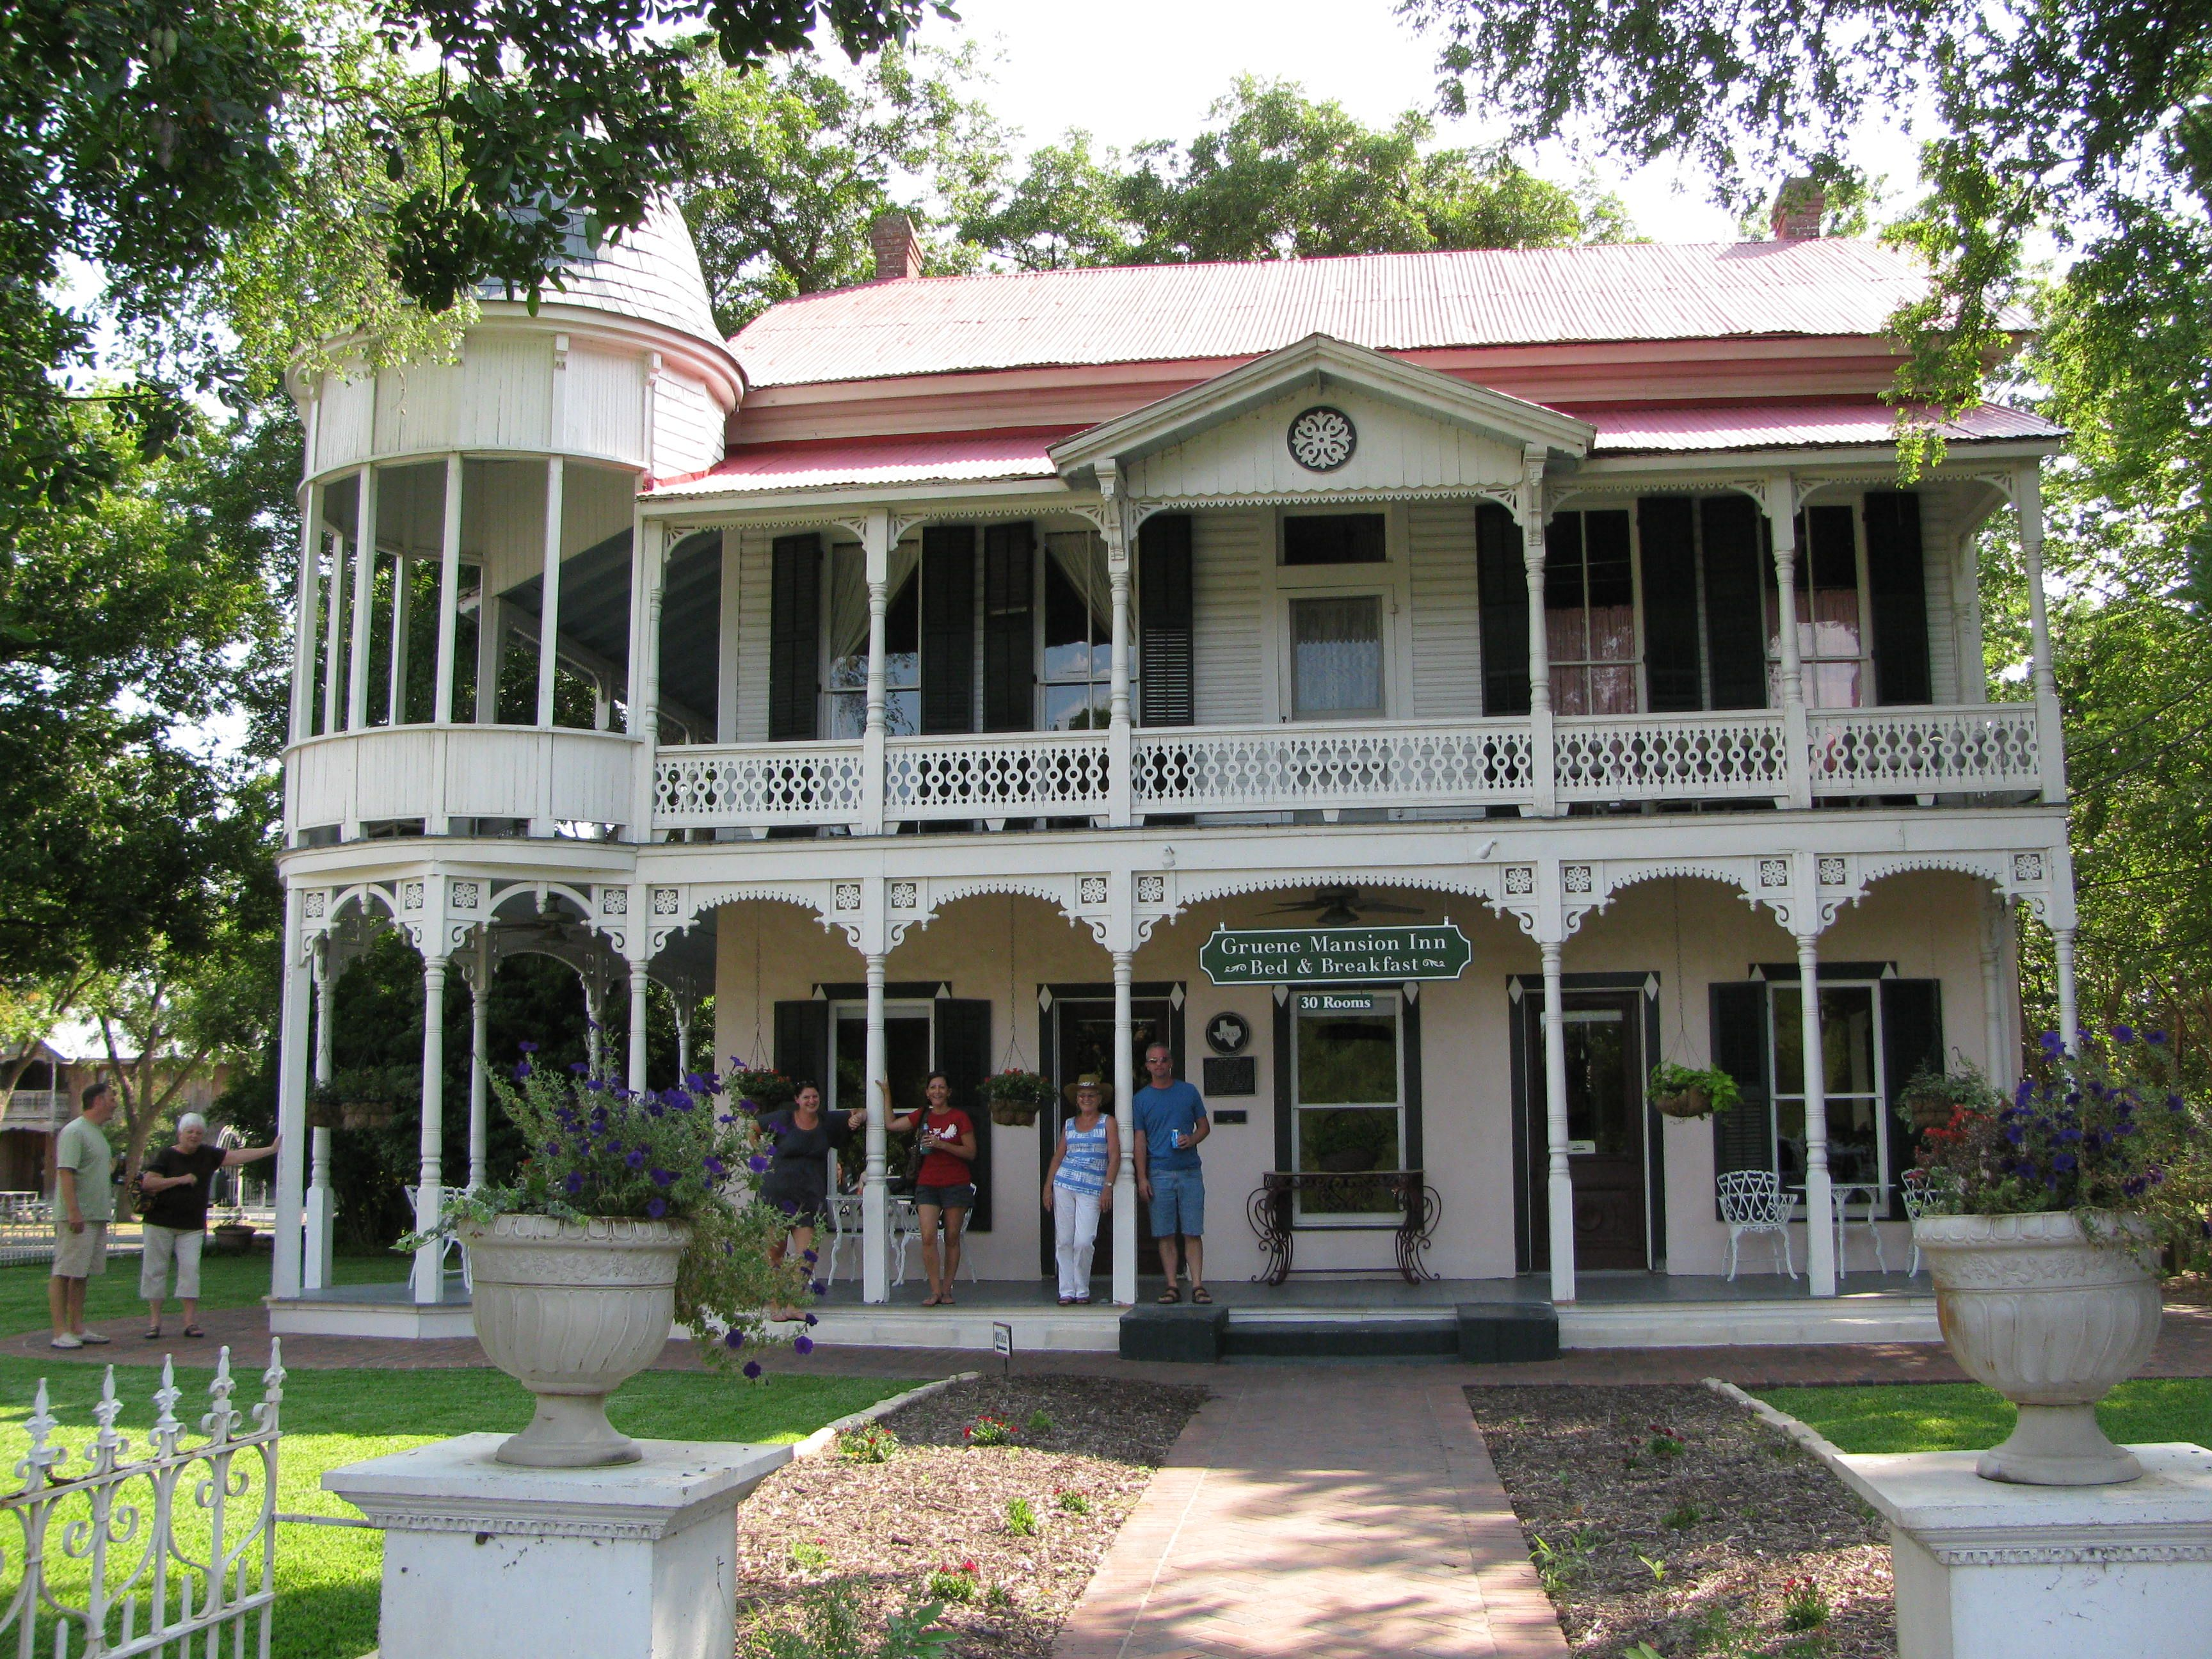 Gruene Mansion, awesome Bed and Breakfast! Victorian homes